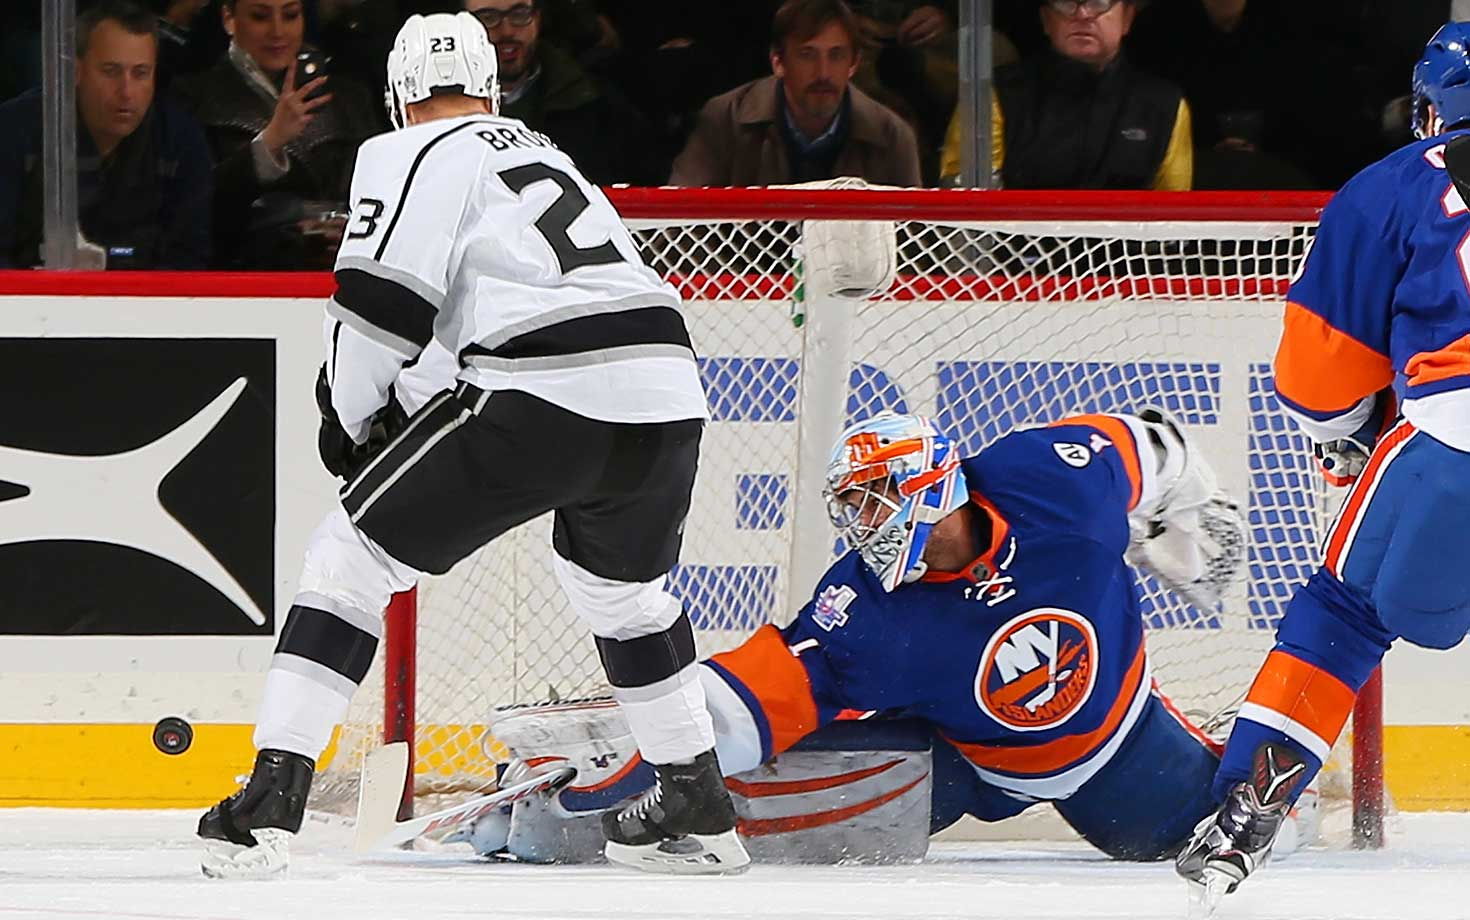 Thomas Greiss of the New York Islanders makes a save on Dustin Brown of the Los Angeles Kings.